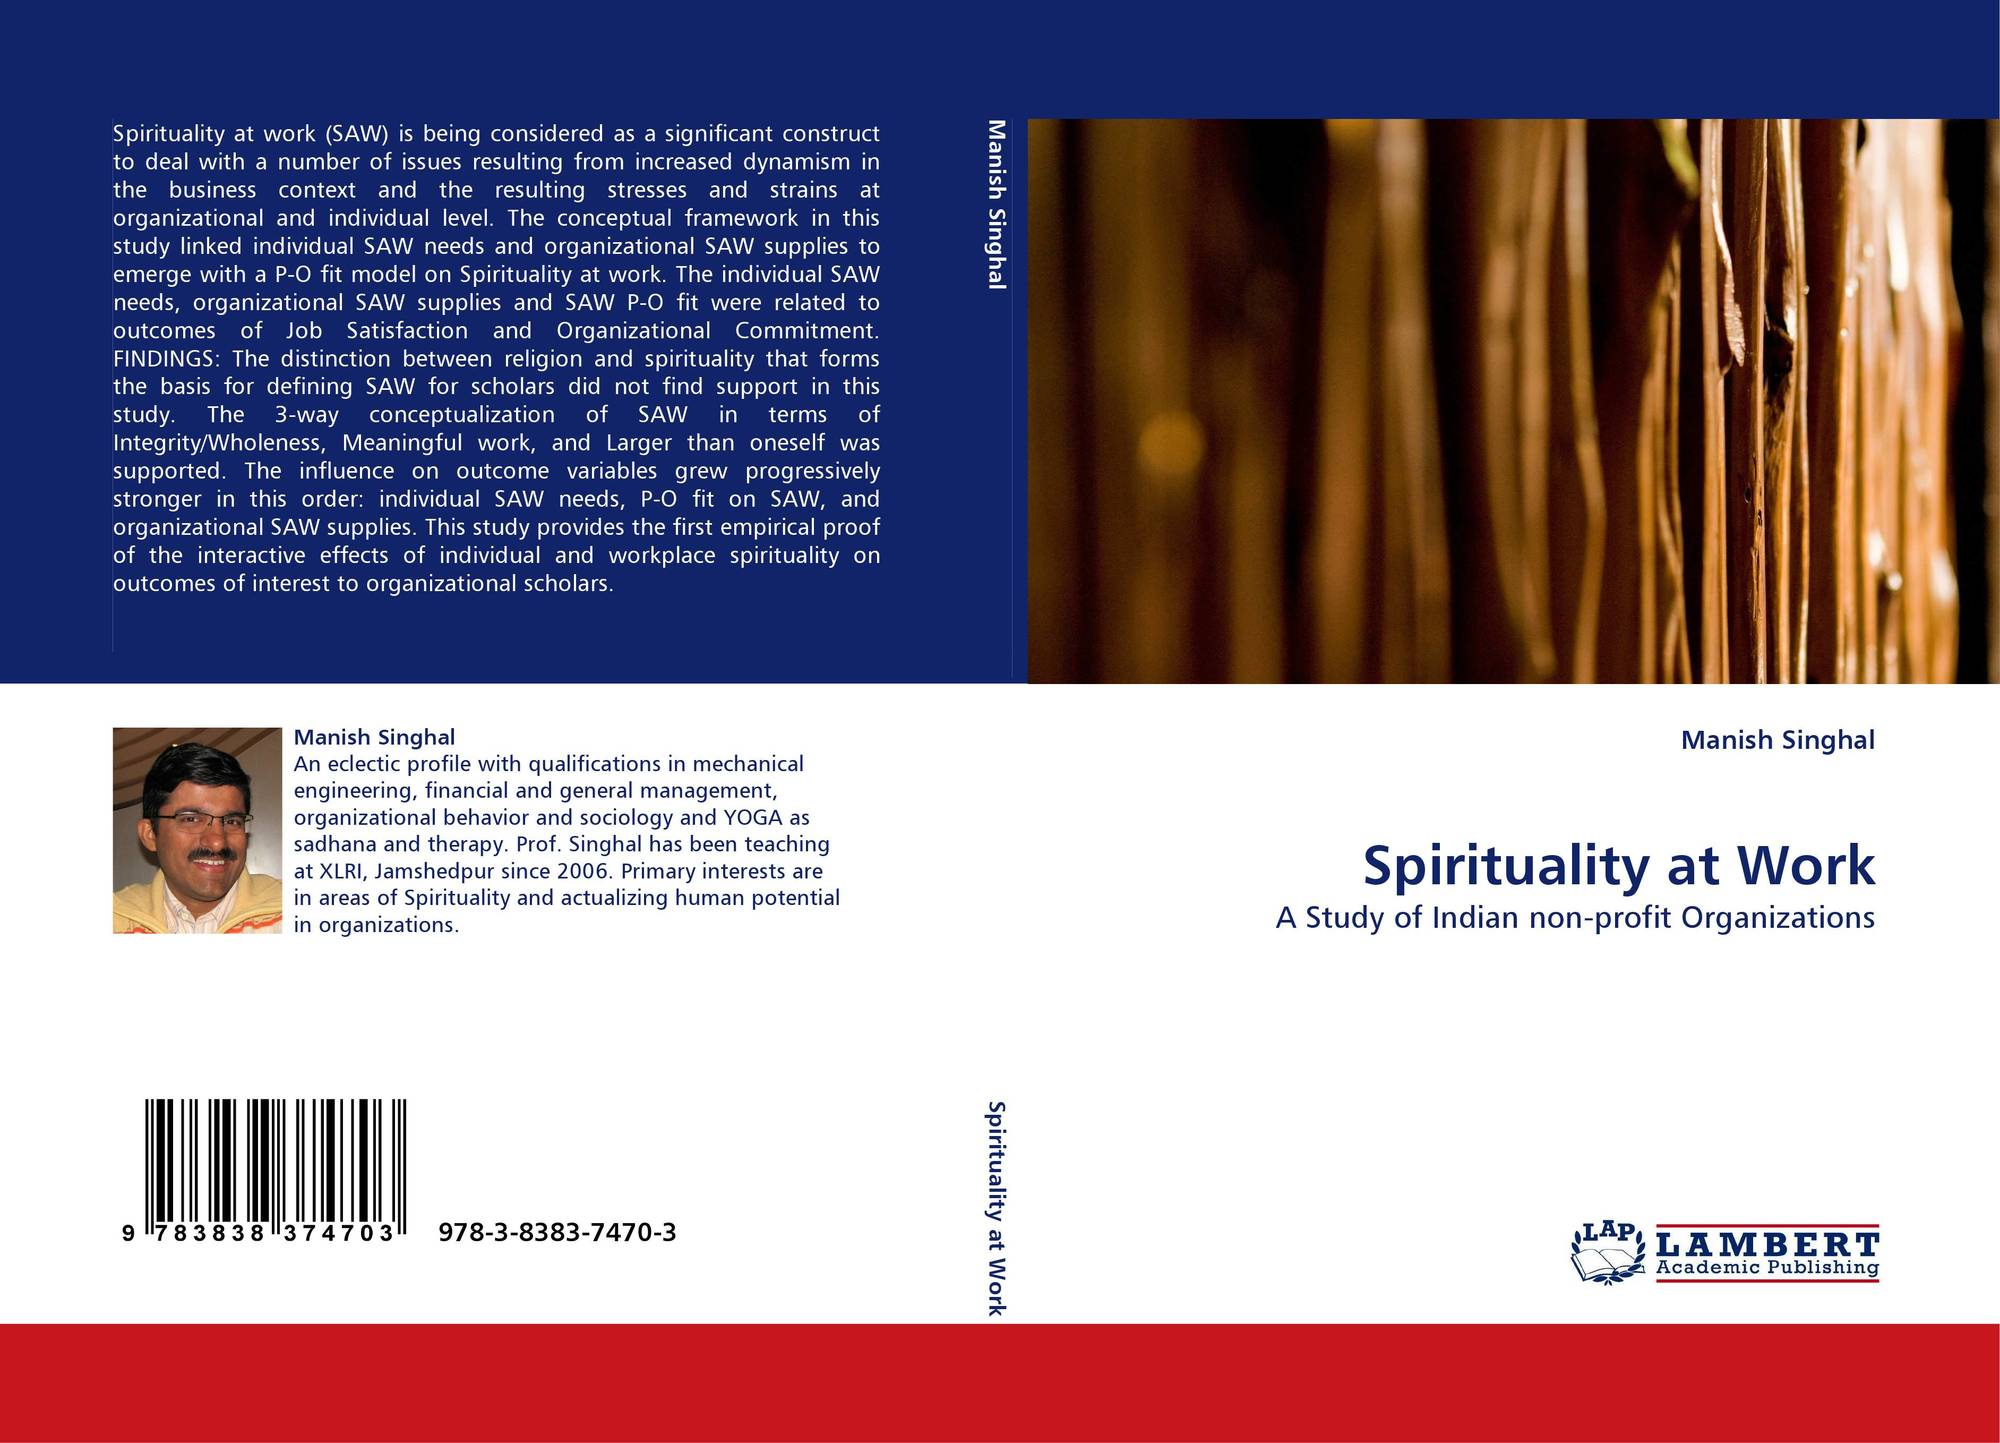 the concept of spirituality sociology essay - medicalization of sociology sociologist utilizes several perspectives to explain individual motivations of deviance with an emphasis on biological, psychiatric, psychoanalytic sociology concepts essay - 1 social action is defined as day to day decisions and actions of individuals within the social world.